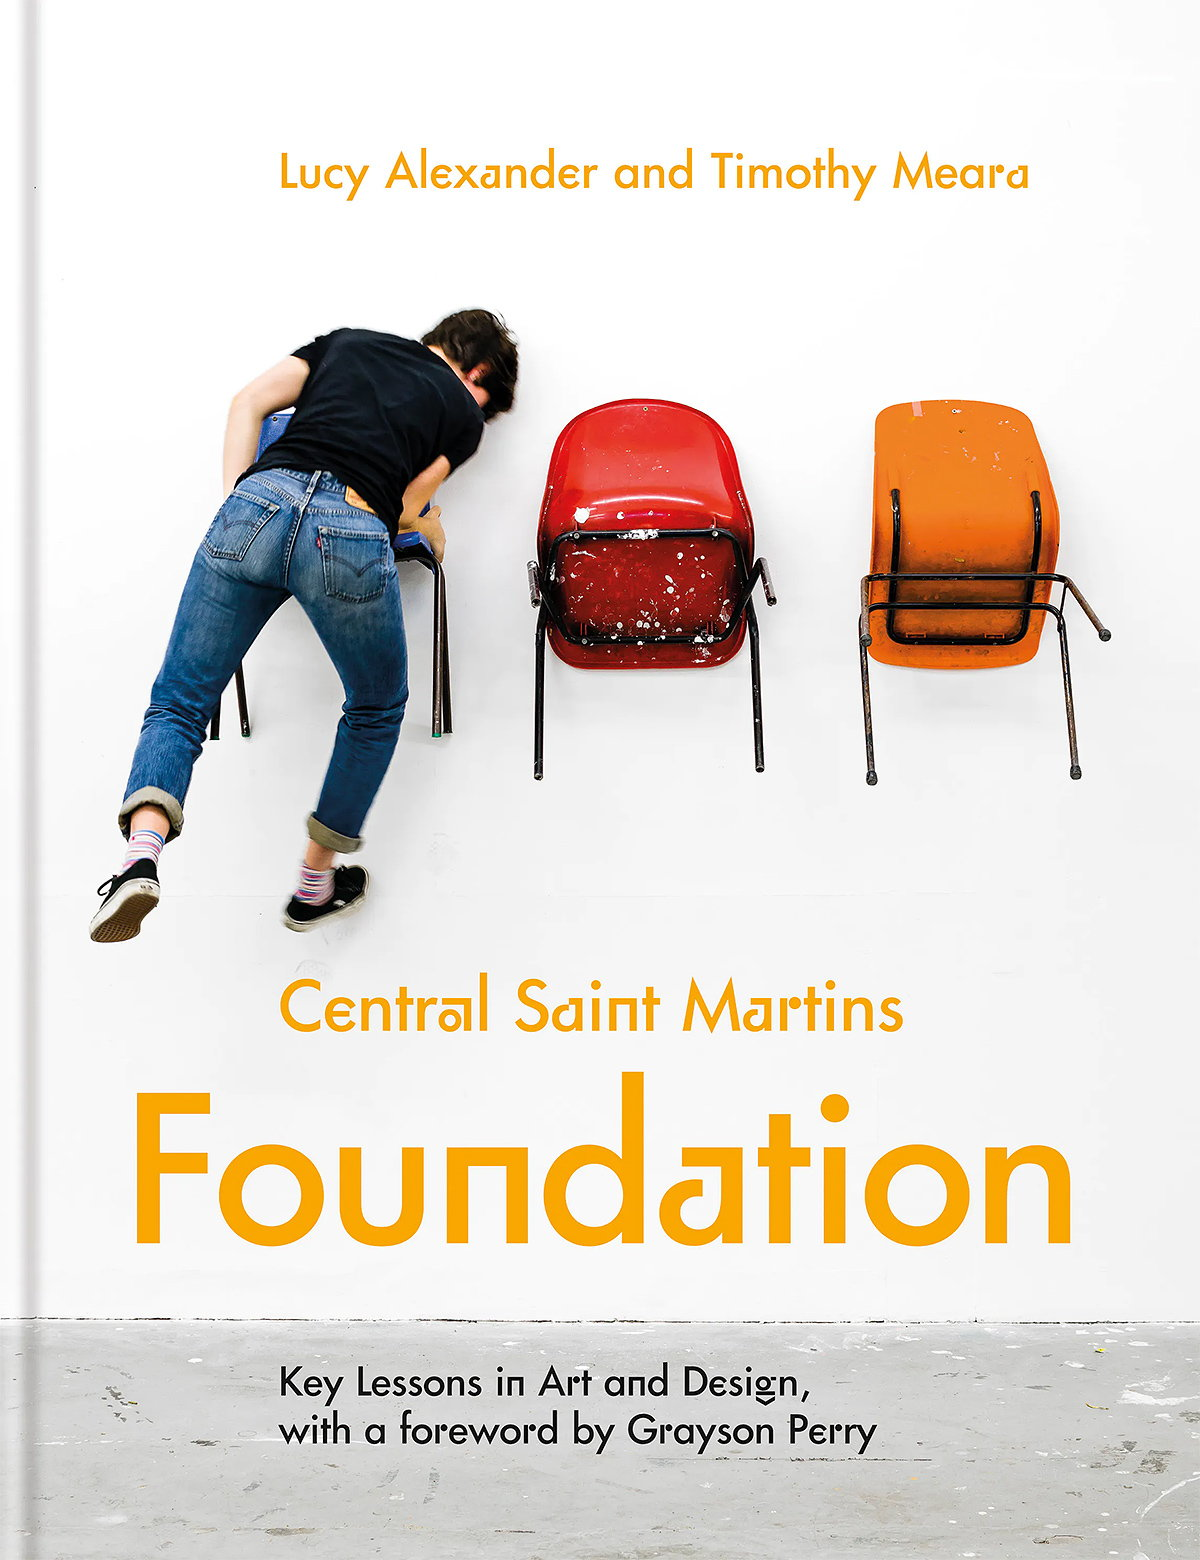 Central Saint Martins Foundation